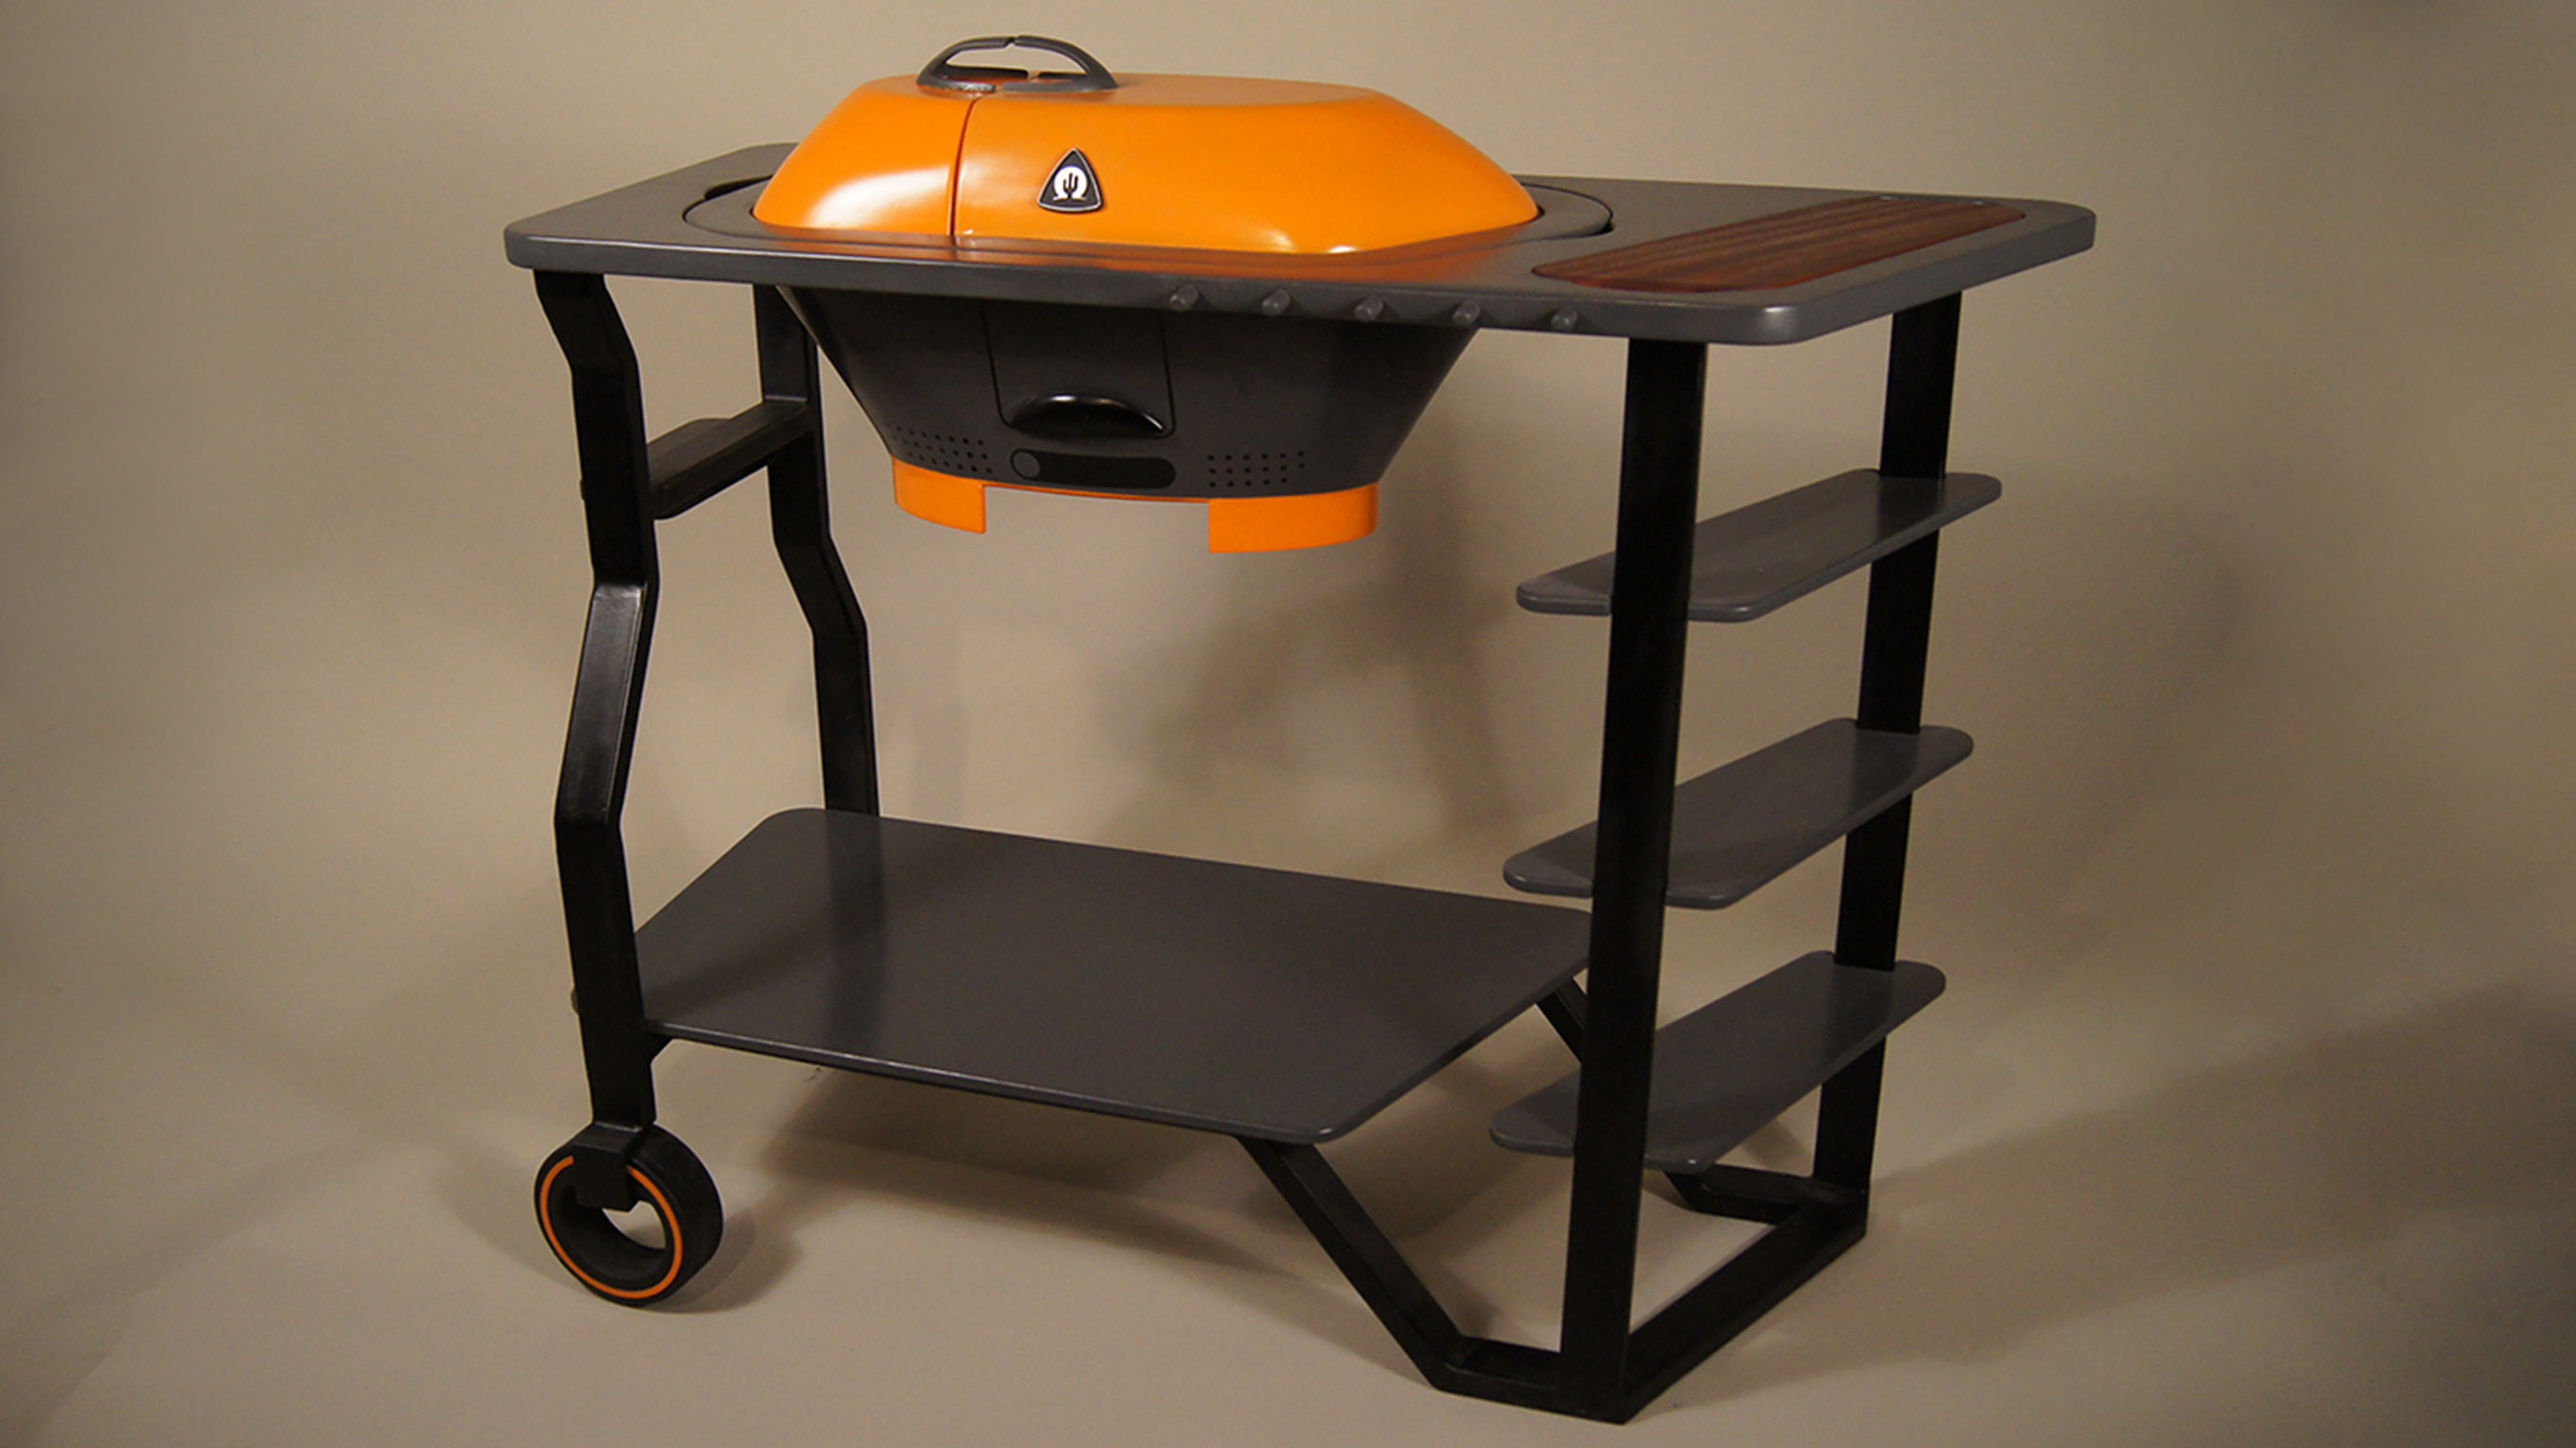 Mojave Grill Model